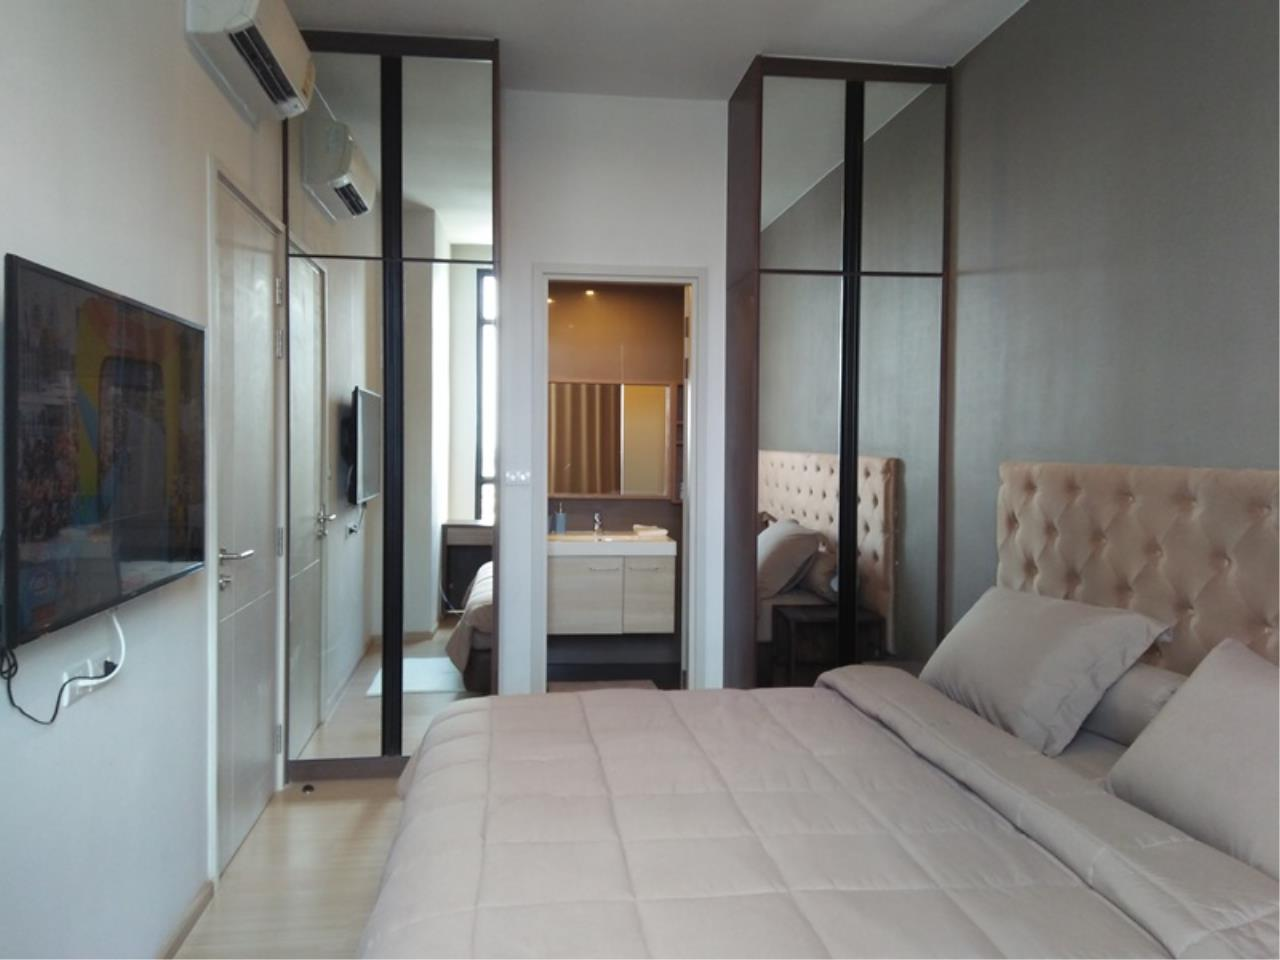 Siam Prop Agency's The Capital Ekamai - Thonglor Luxury Condo, 2 bedrooms for rent with 4-meter ceiling height 2